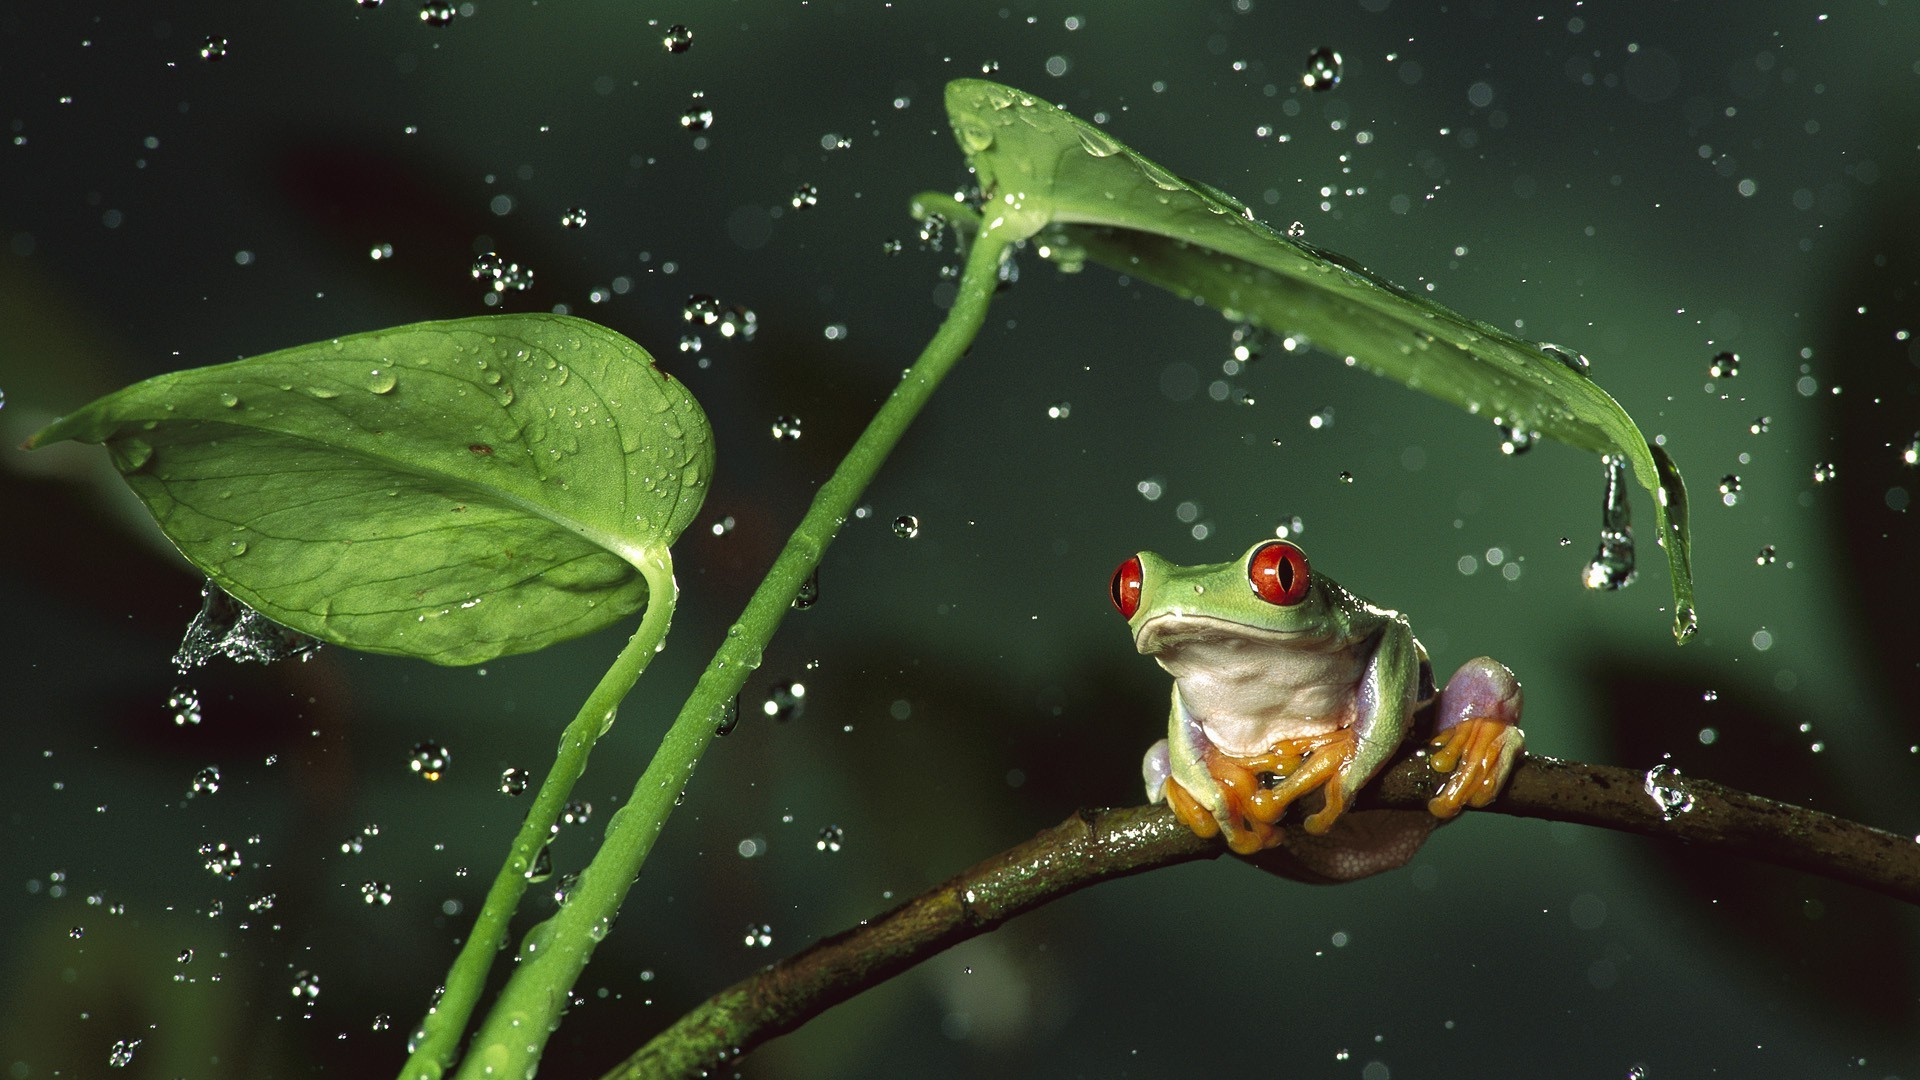 Cute Ducks In Water Wallpaper Frog Animals Nature Amphibian Red Eyed Tree Frogs